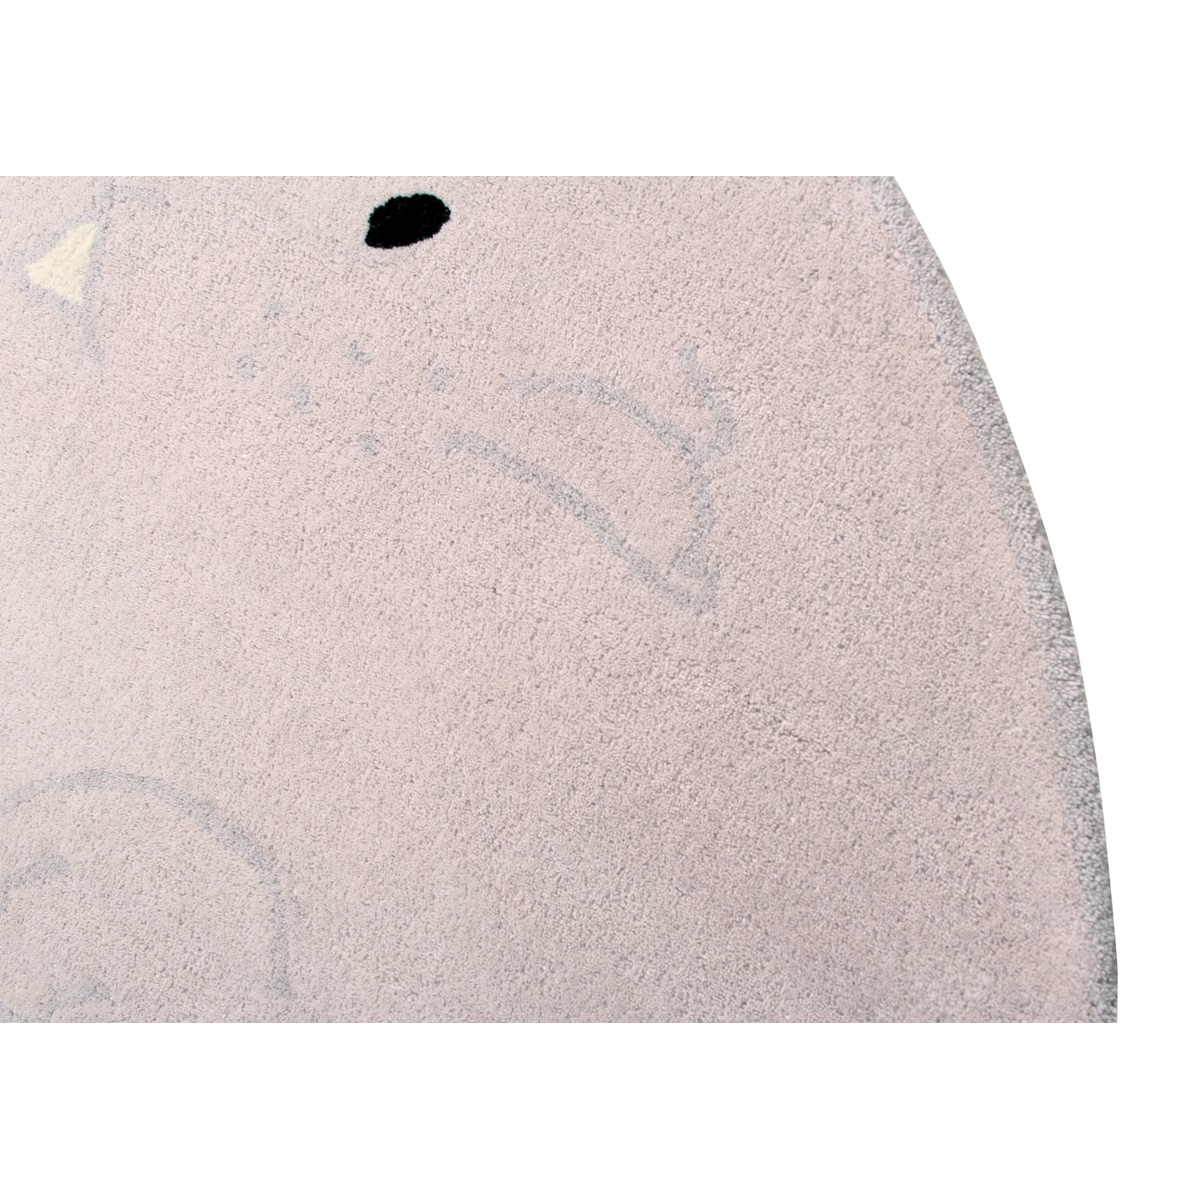 lorena canals tapis lavable chubby le lapin 150 x 200. Black Bedroom Furniture Sets. Home Design Ideas